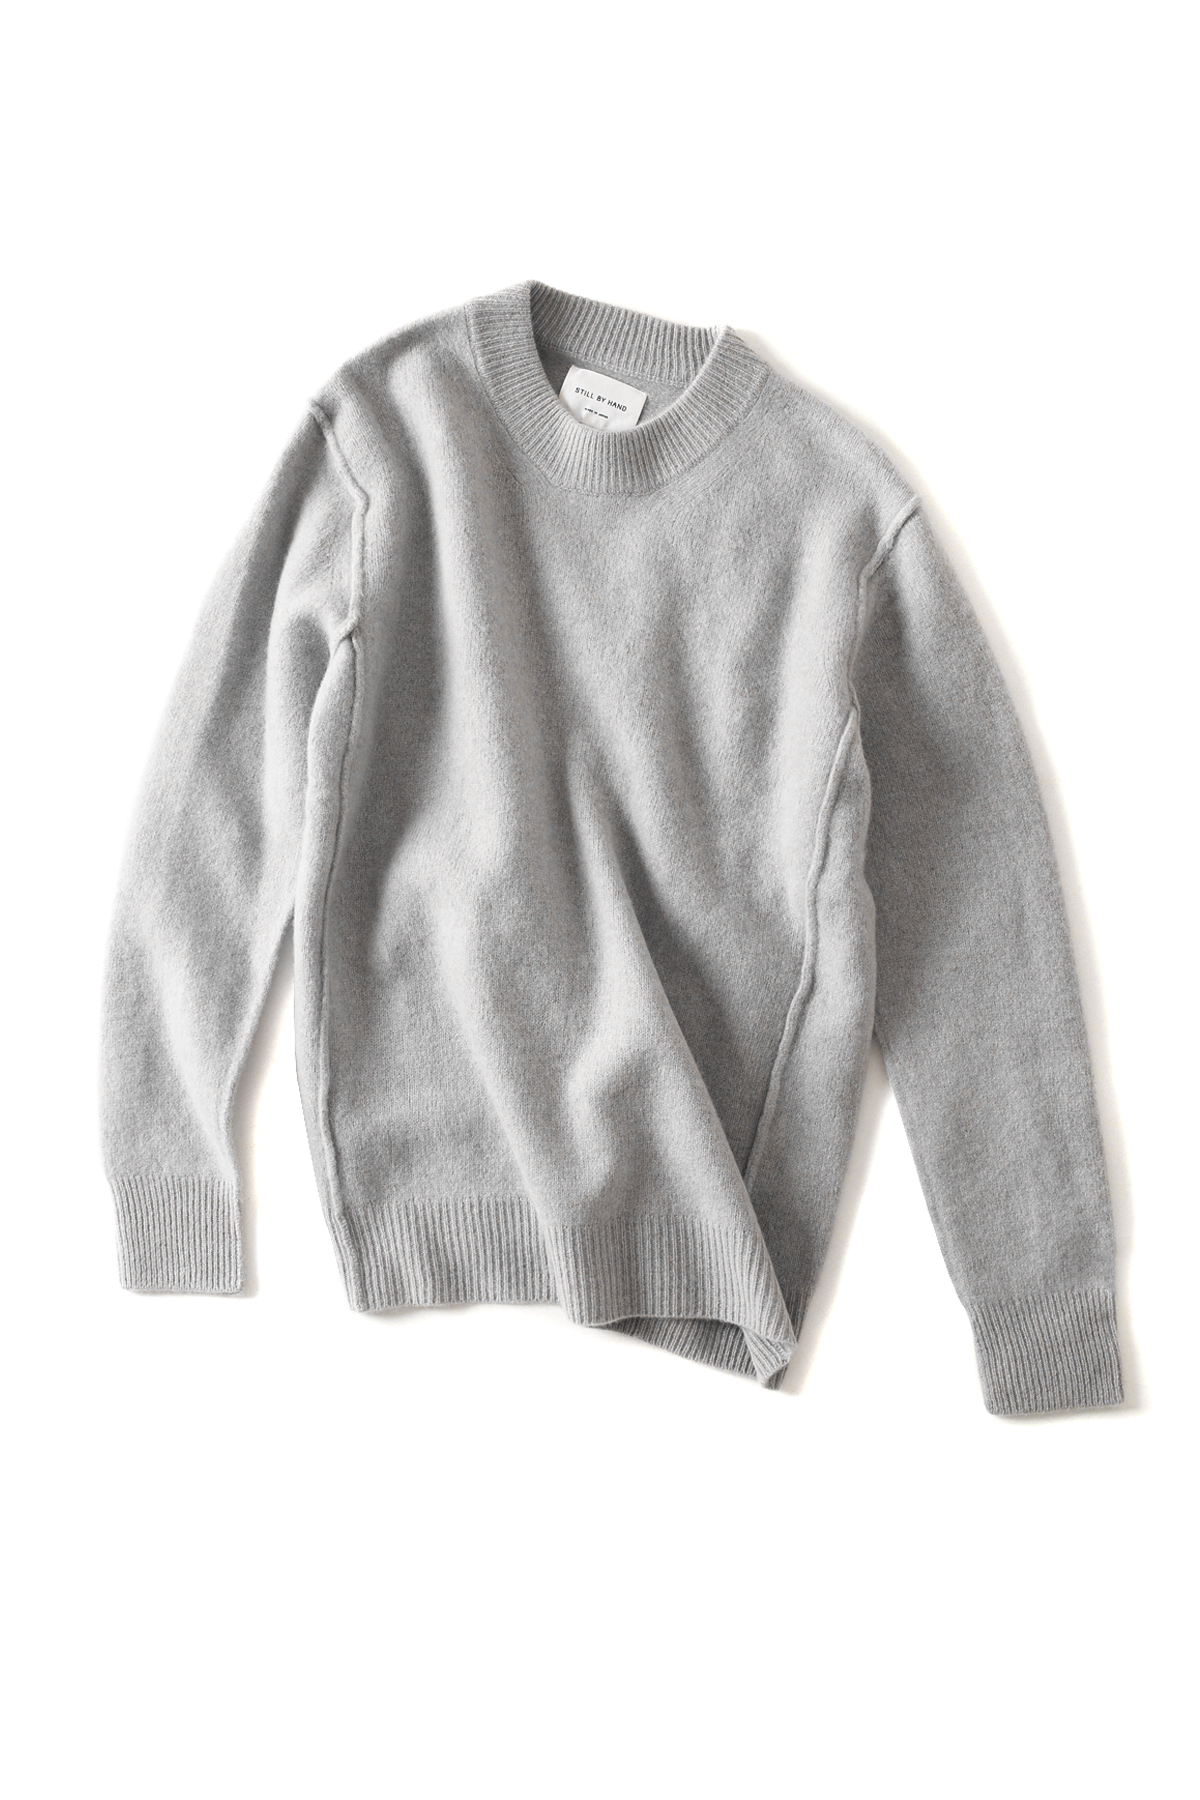 Still by Hand  : Shaggy Knit (Grey)